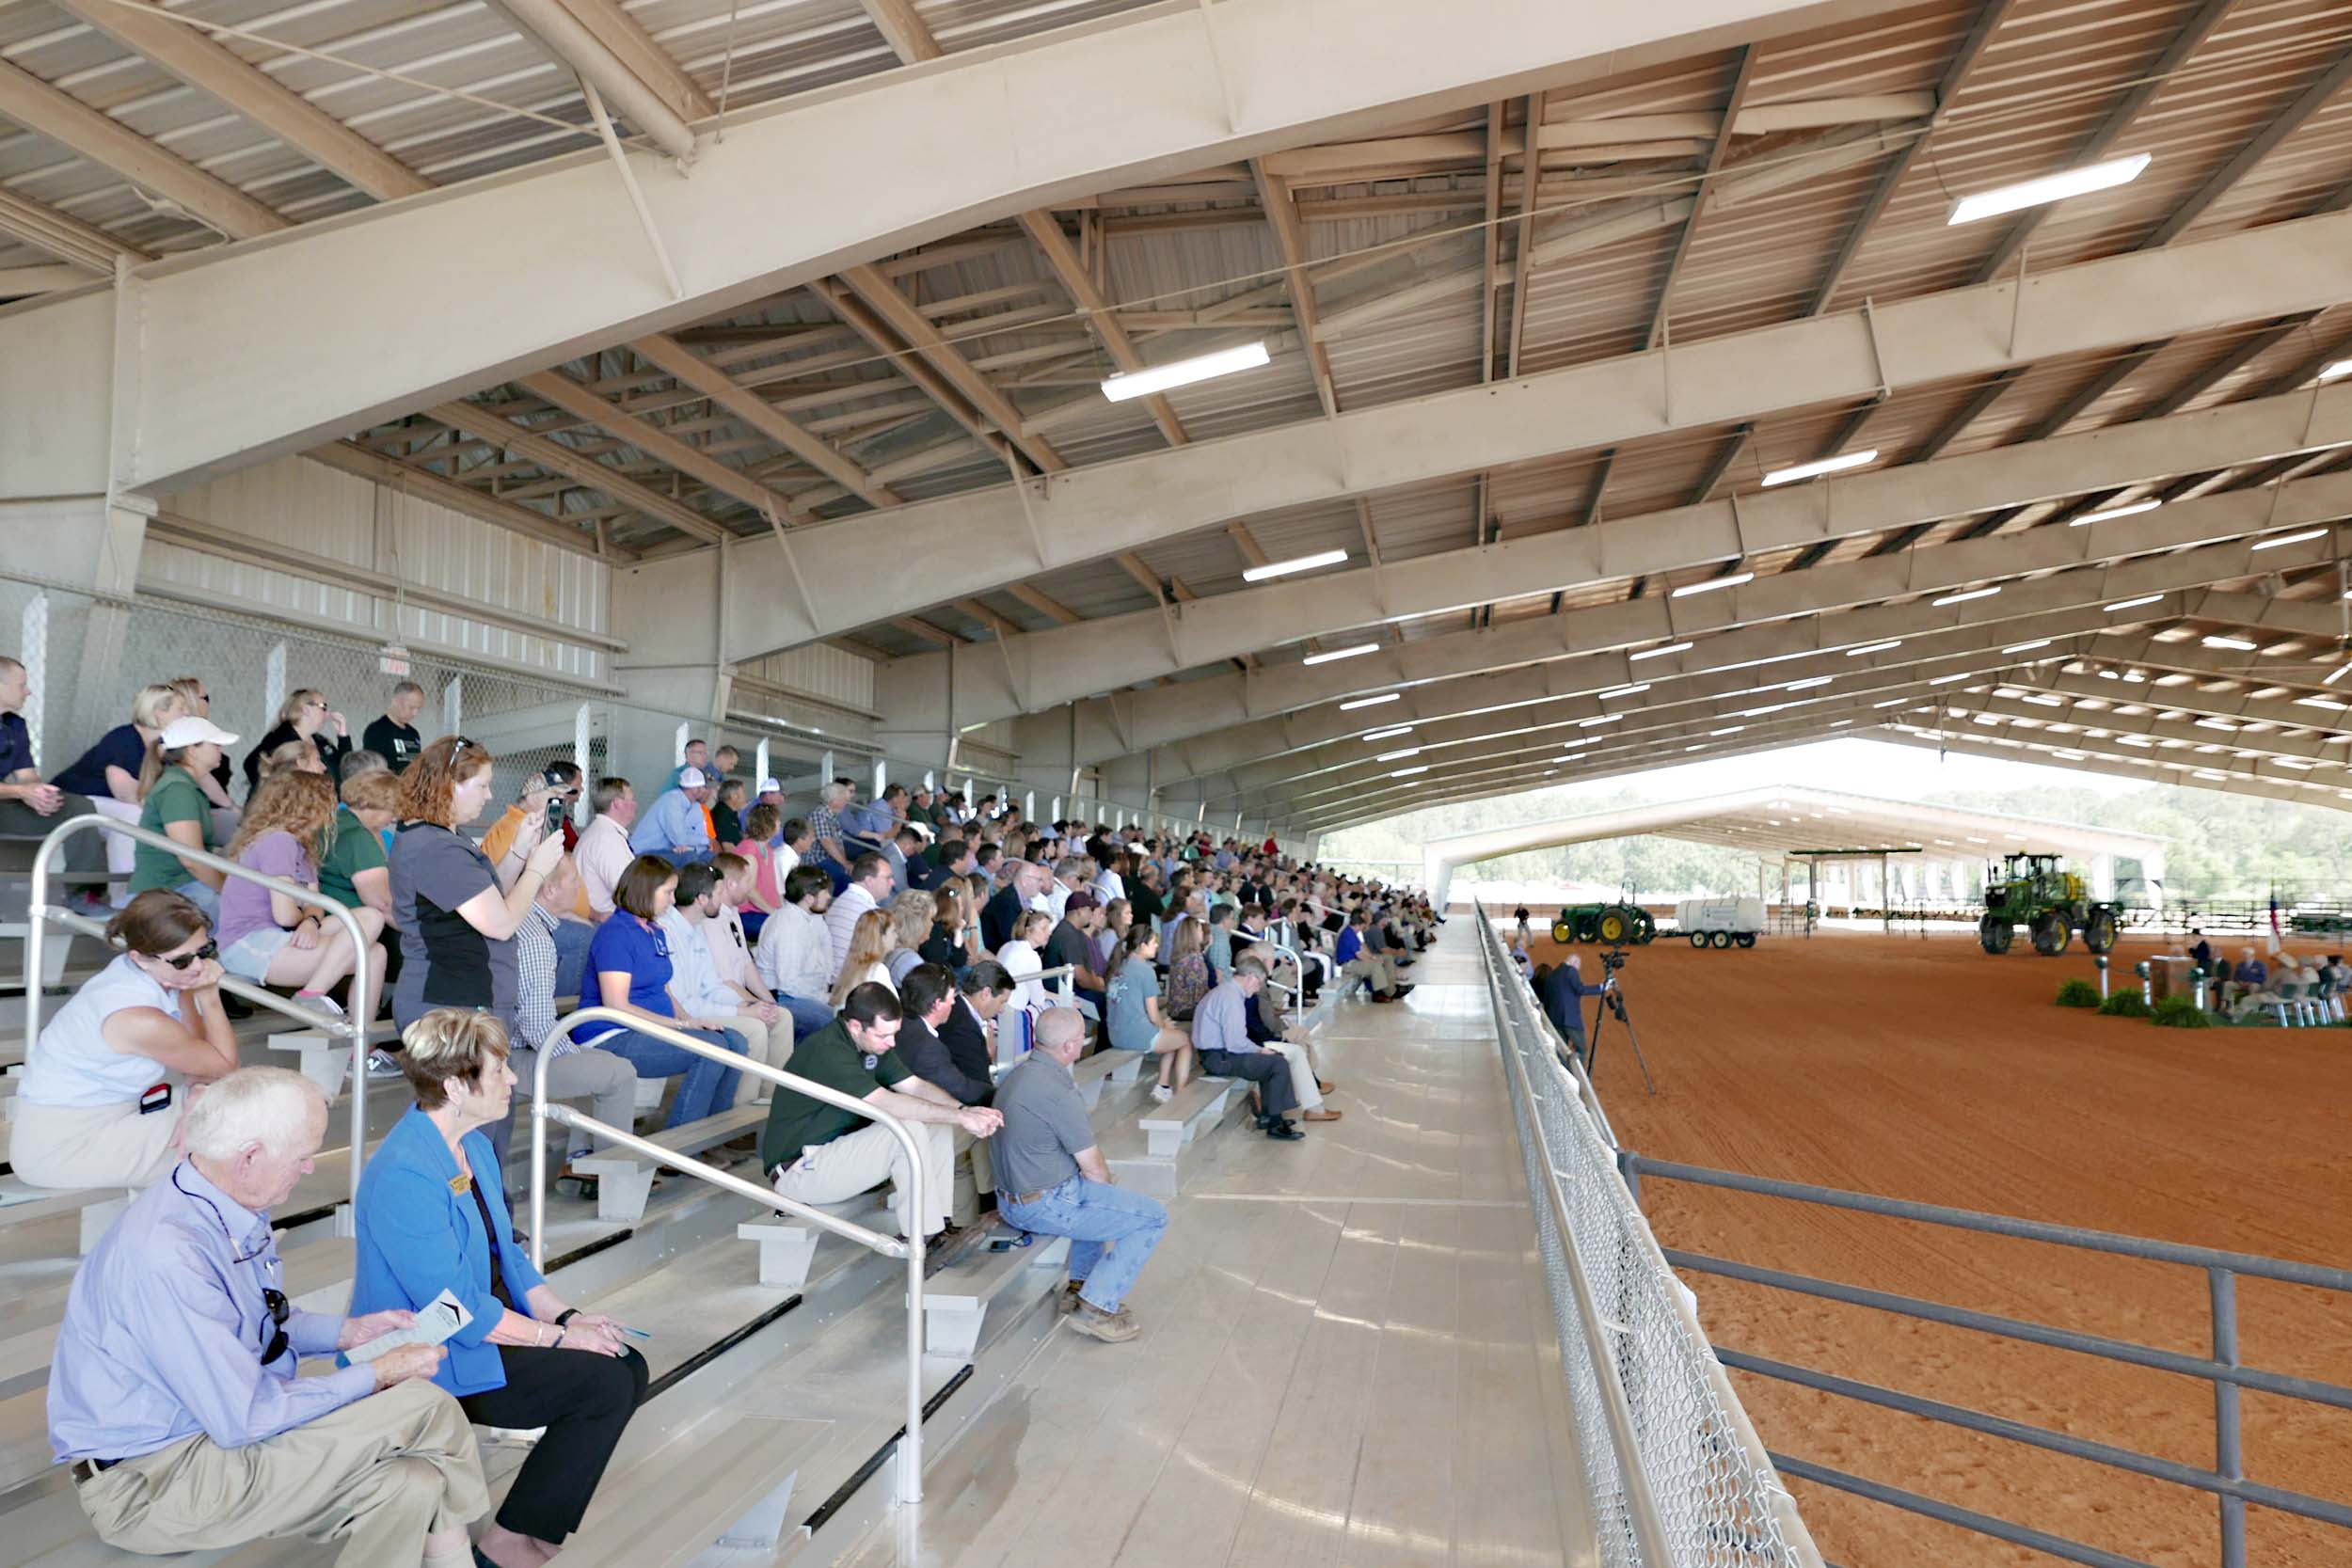 Several hundred people attend the ribbon cutting for the new Bulloch County Agricultural Center